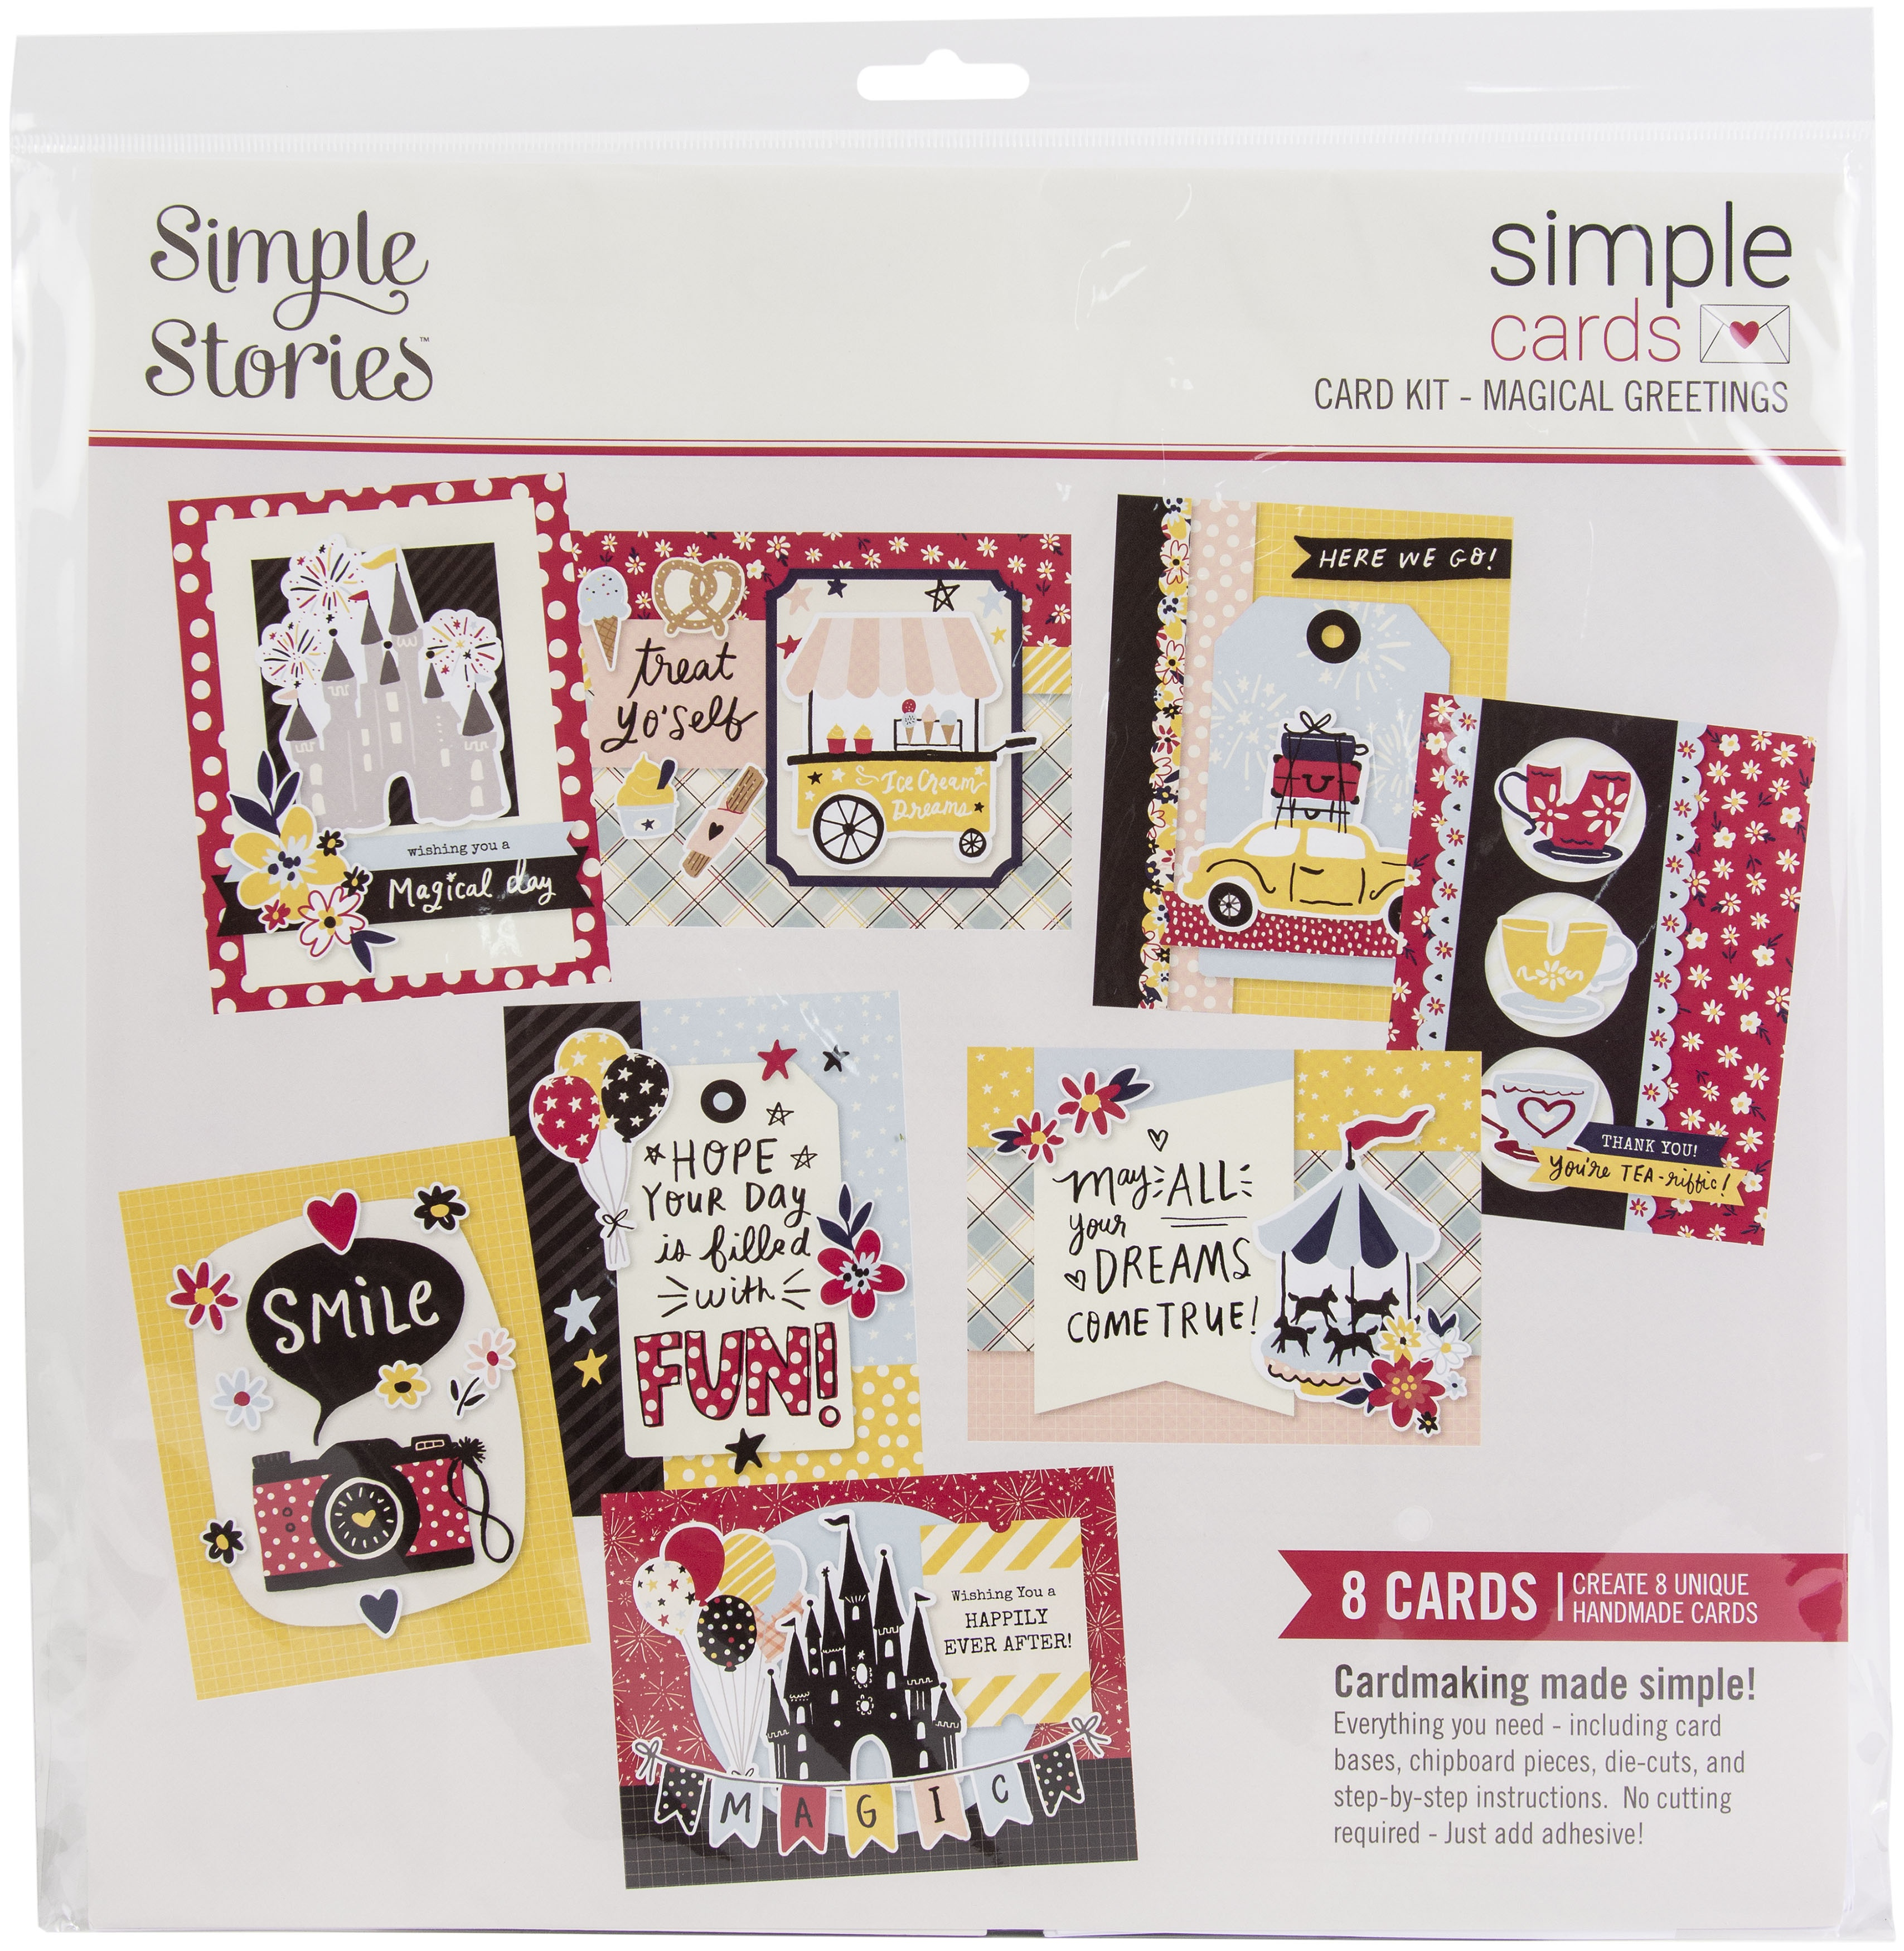 Magical Greetings Simple Cards Card Kit